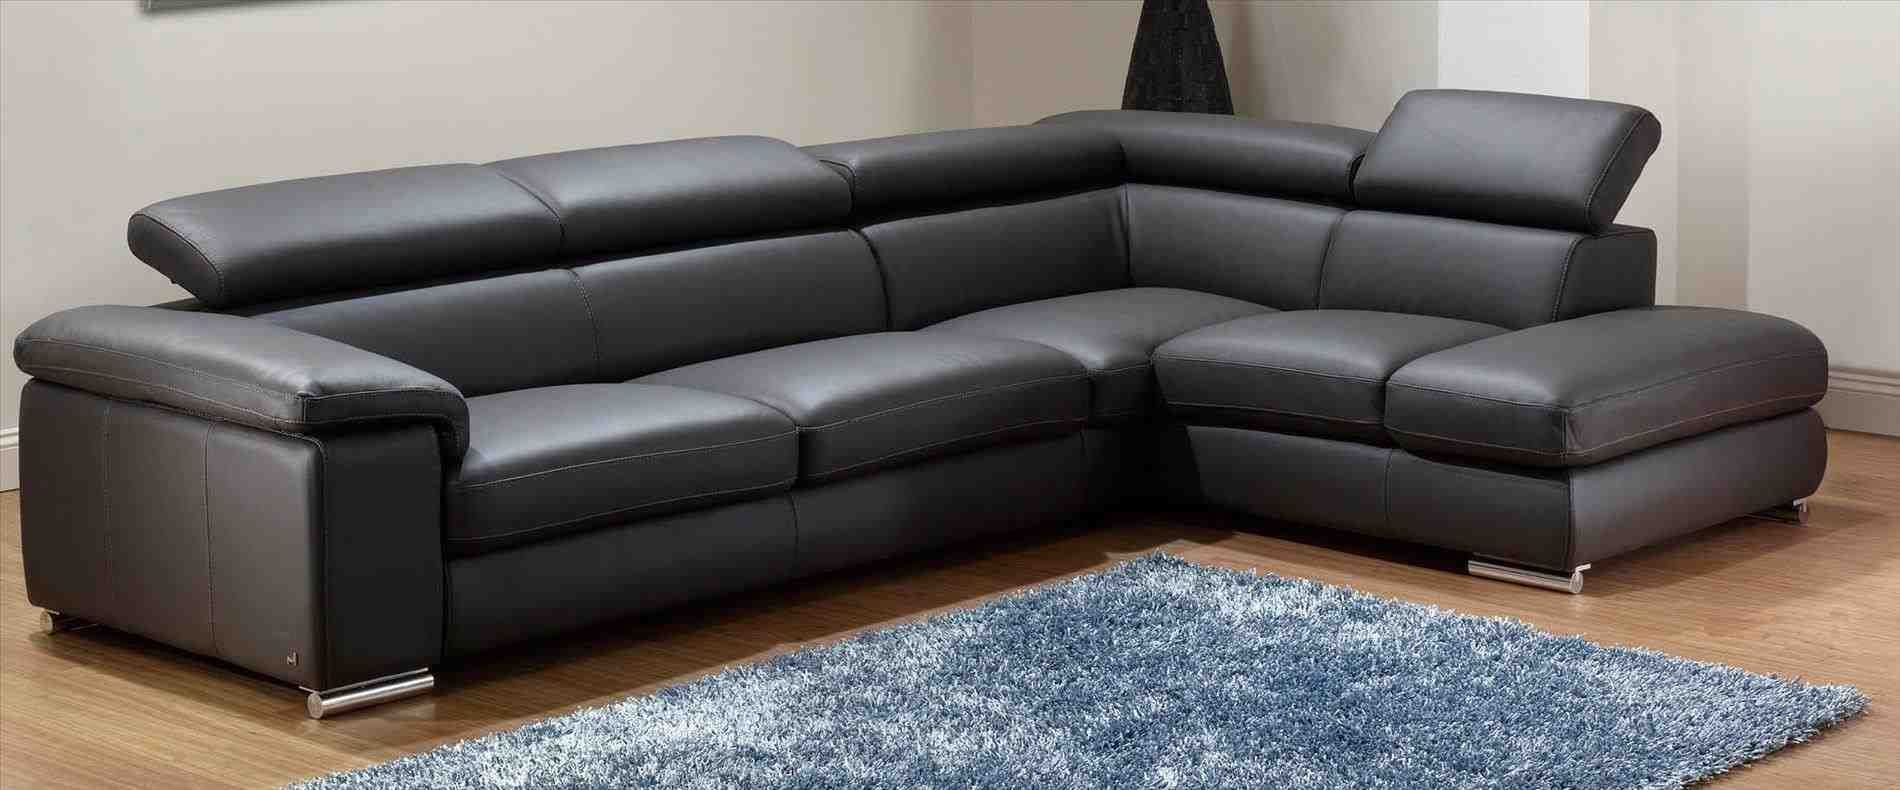 Cheap Sofa Furniture With Images Leather Sectional Sofas Italian Leather Sectional Sofa Modern Sofa Sectional